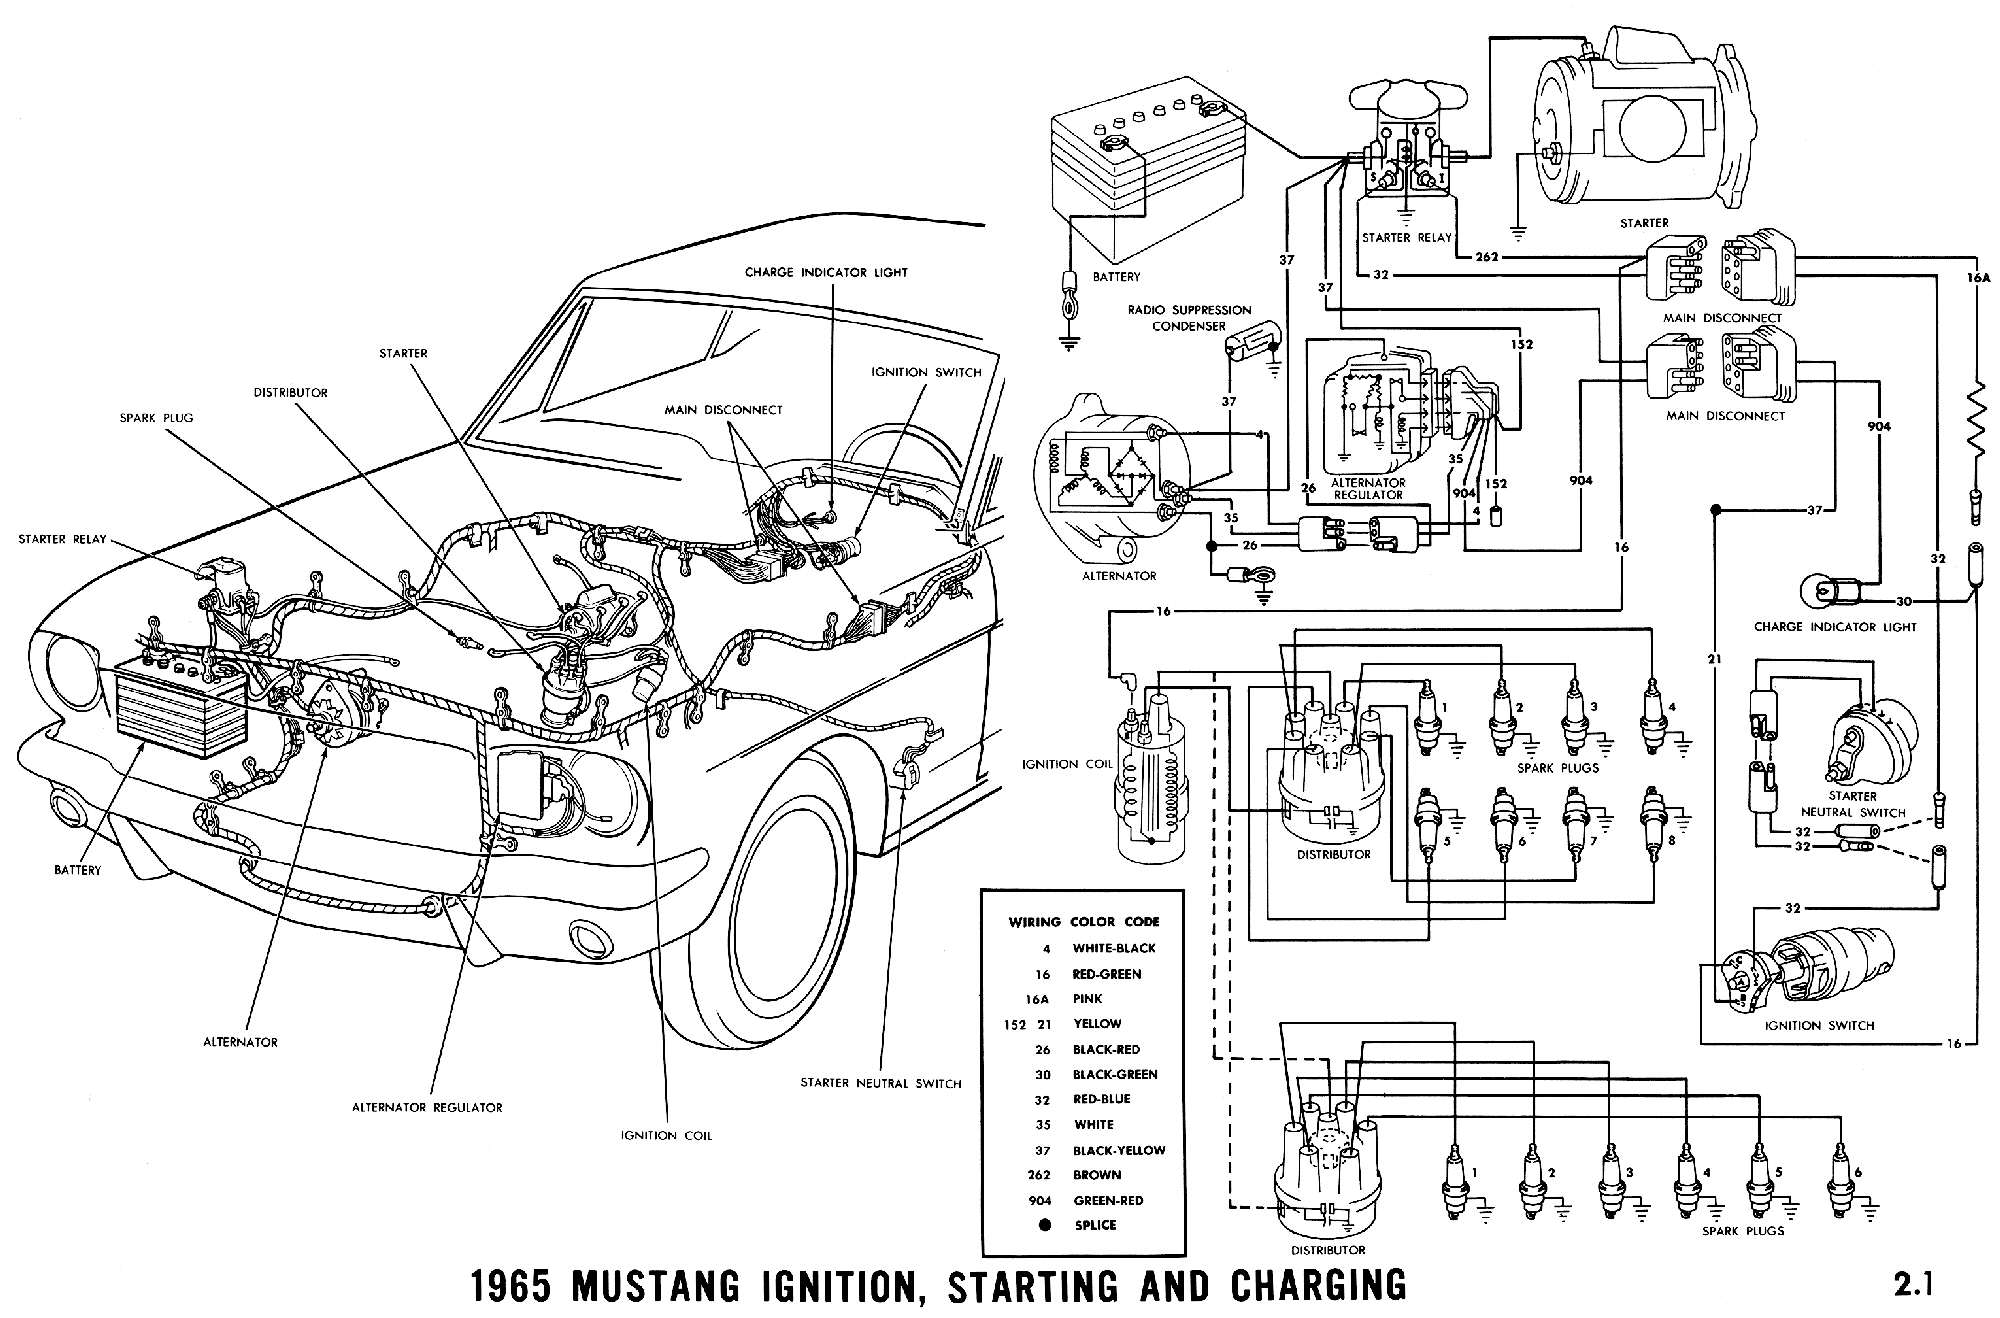 1965c 1965 mustang wiring diagrams average joe restoration car ignition wiring diagram at creativeand.co